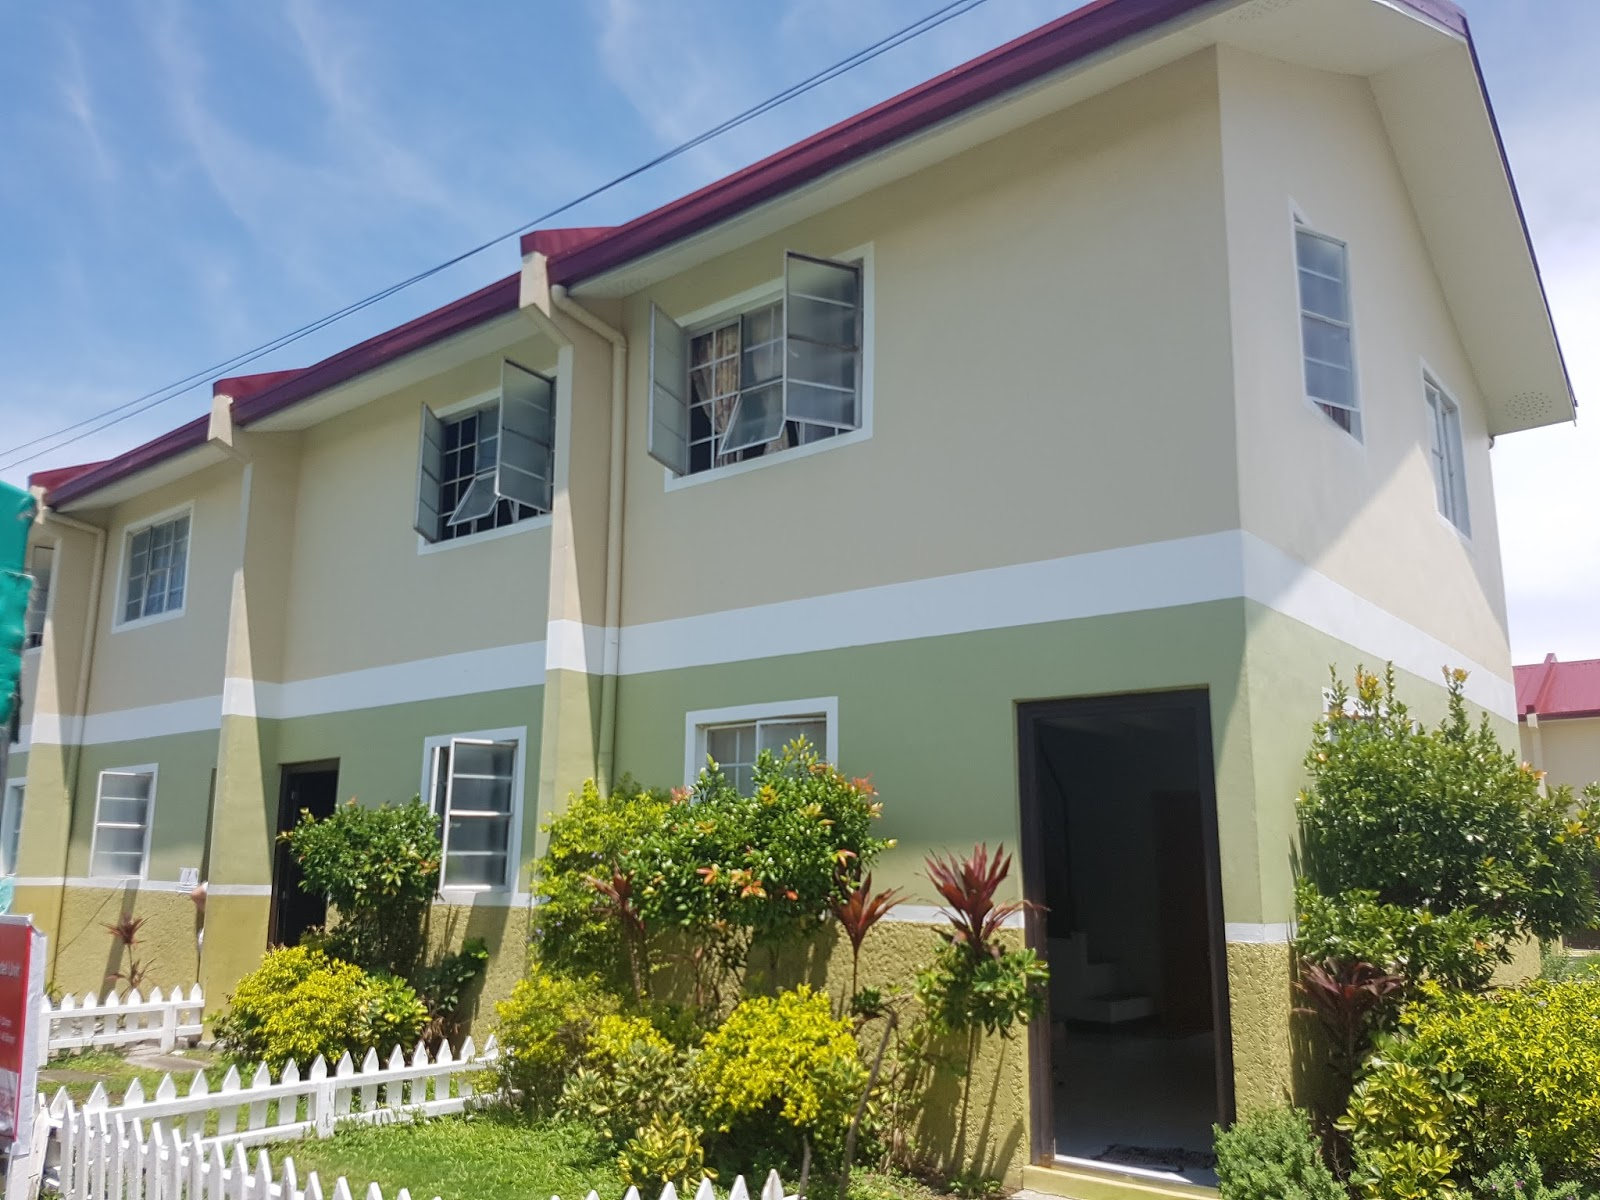 Low Cost Housing In The Philippines Borland Projects